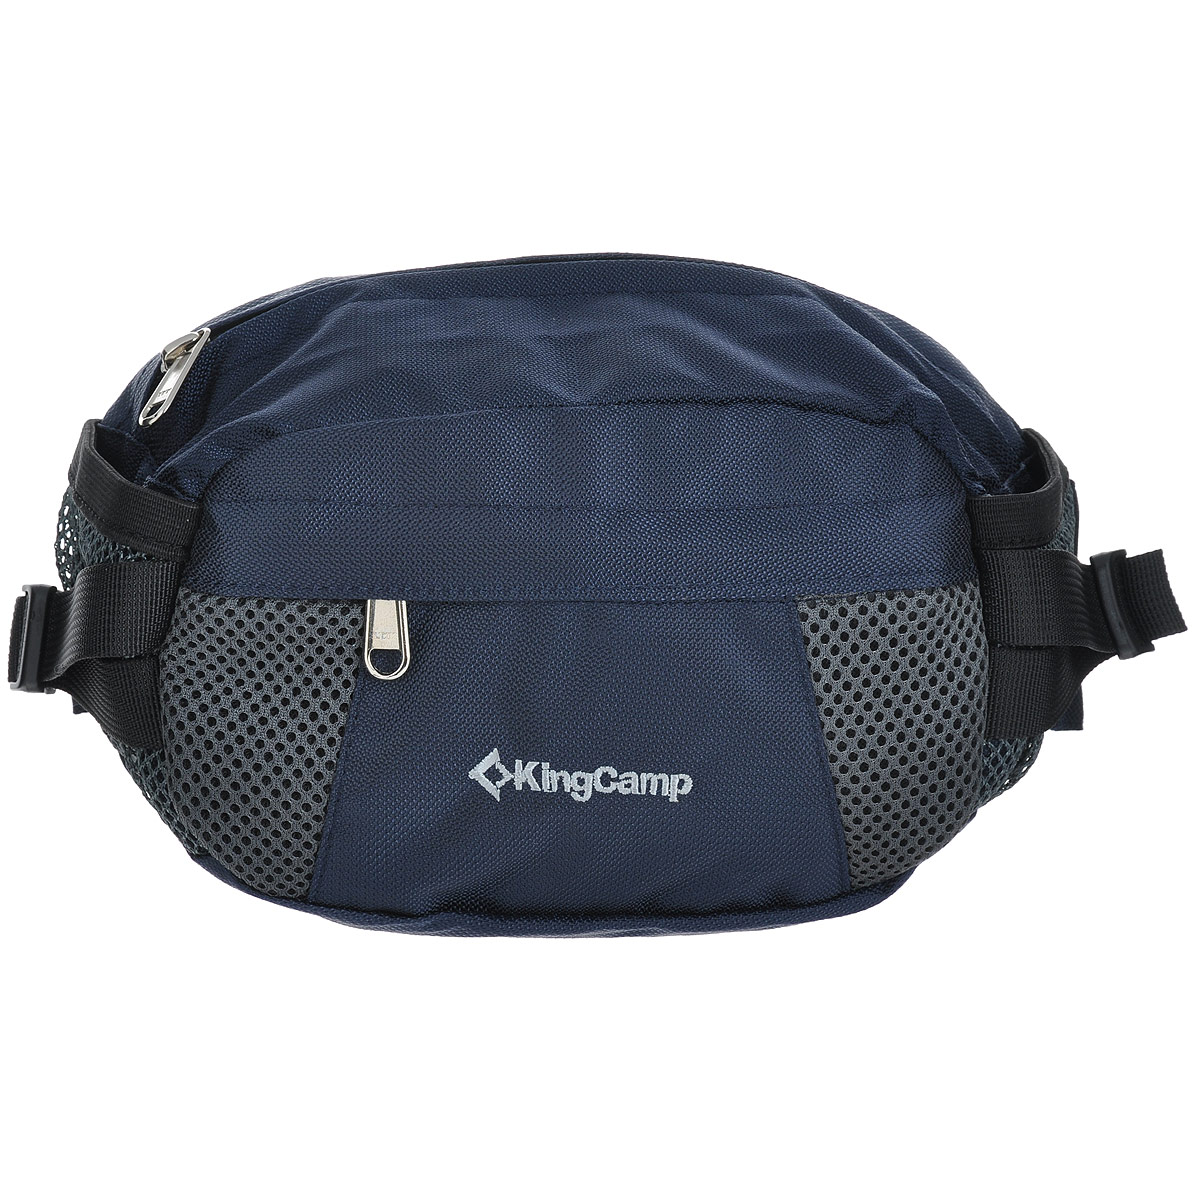 Сумка поясная KingCamp Coral, цвет: синий посуда kingcamp picnic cooking wallet 2 person